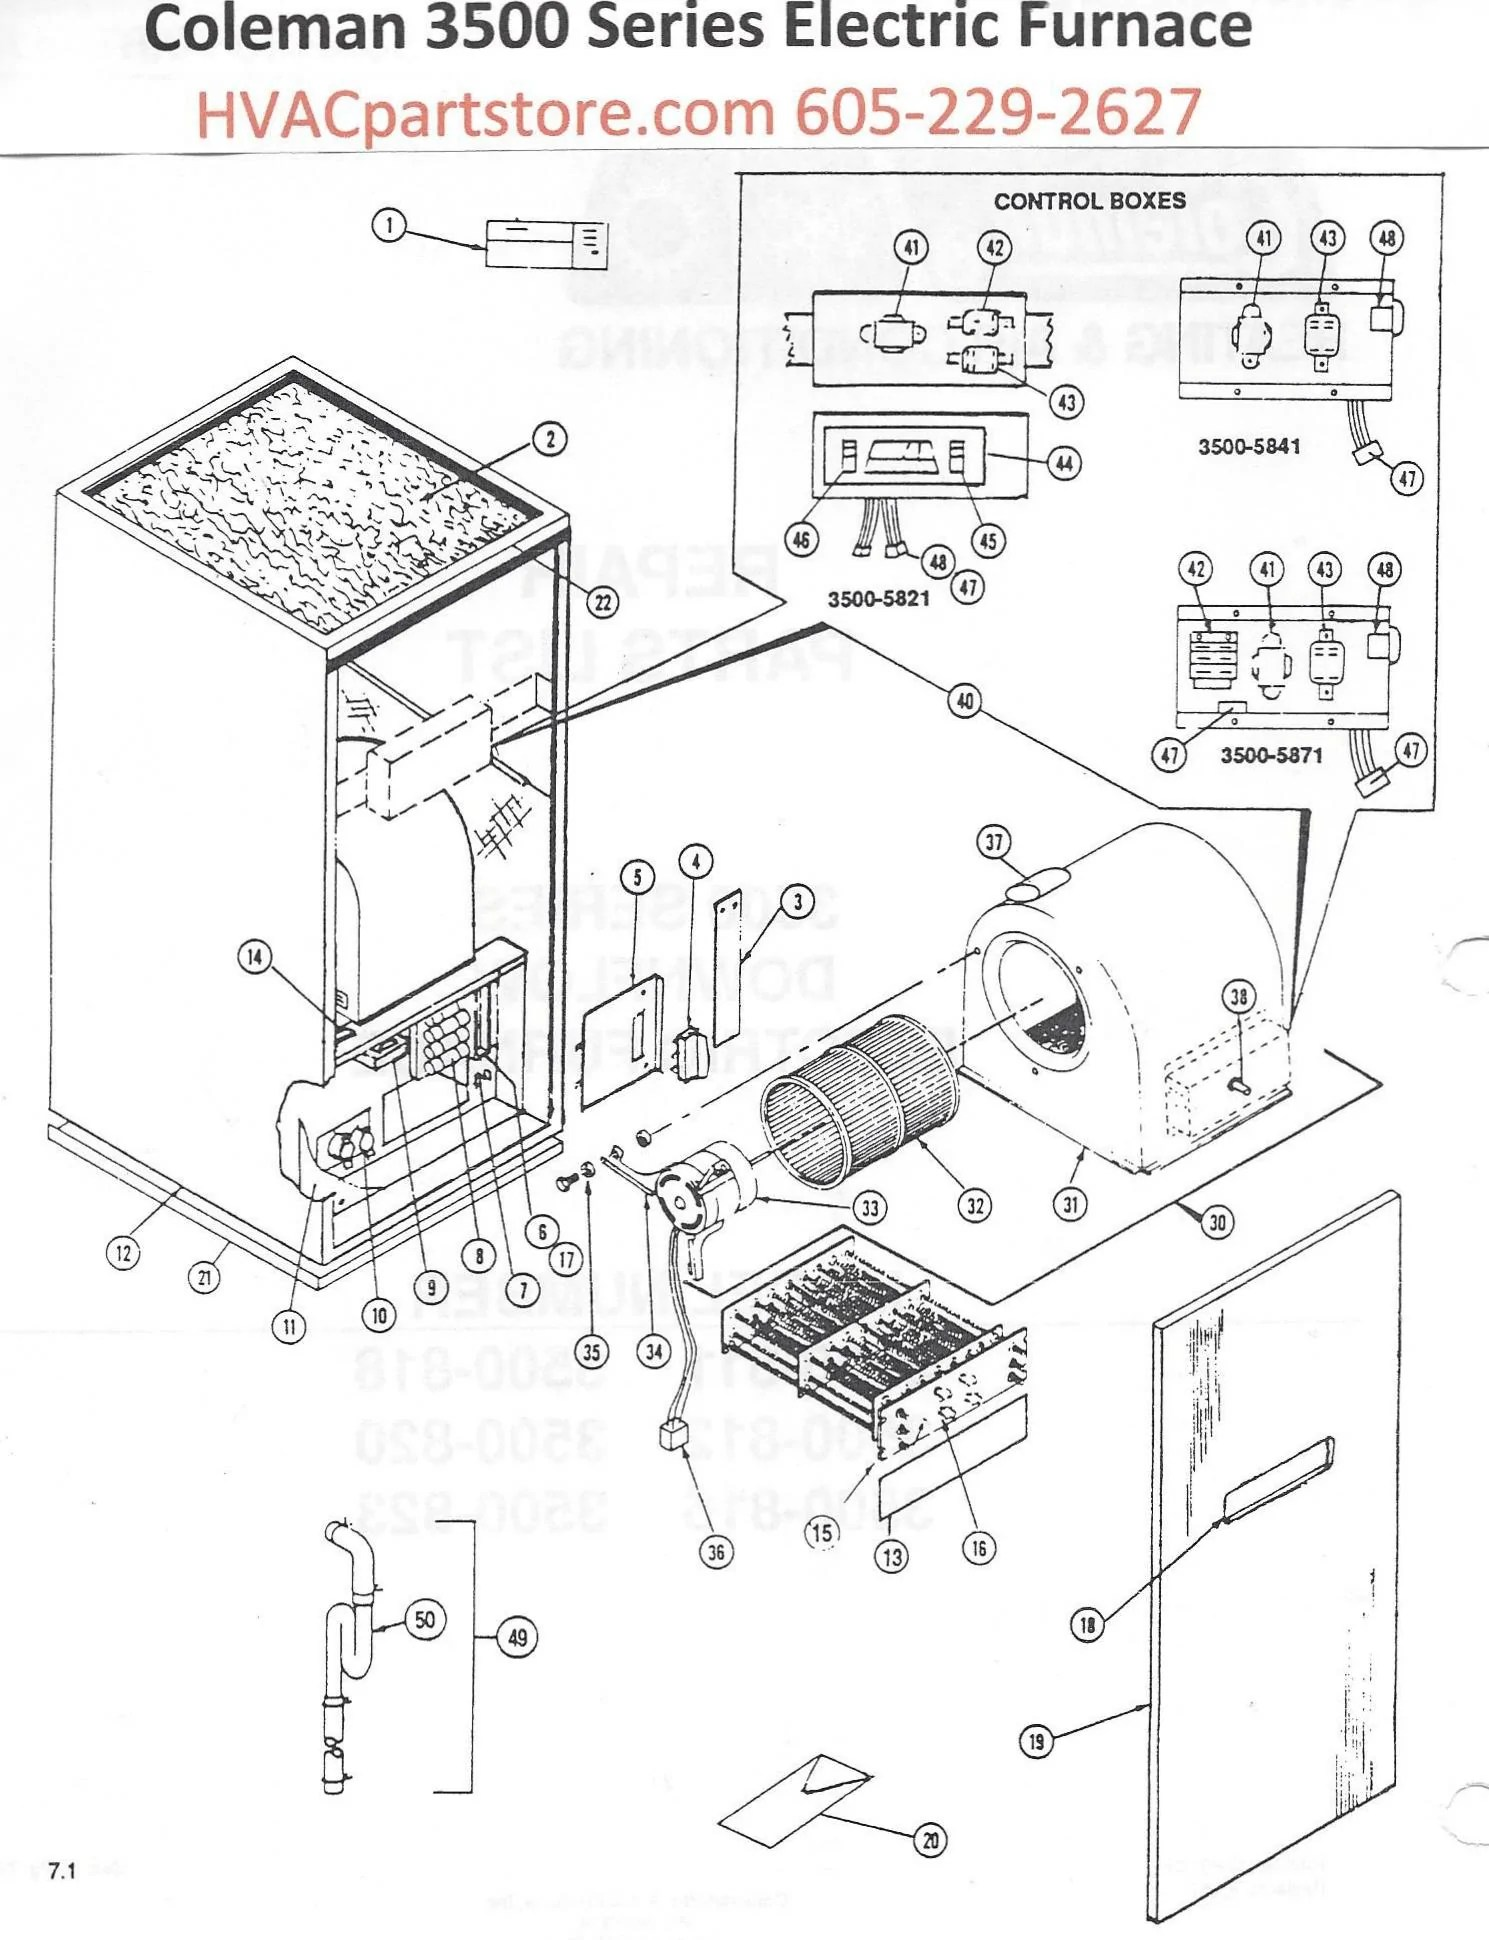 boilers wiring diagram and manuals refraction ks3 3500 811 coleman electric furnace parts  hvacpartstore